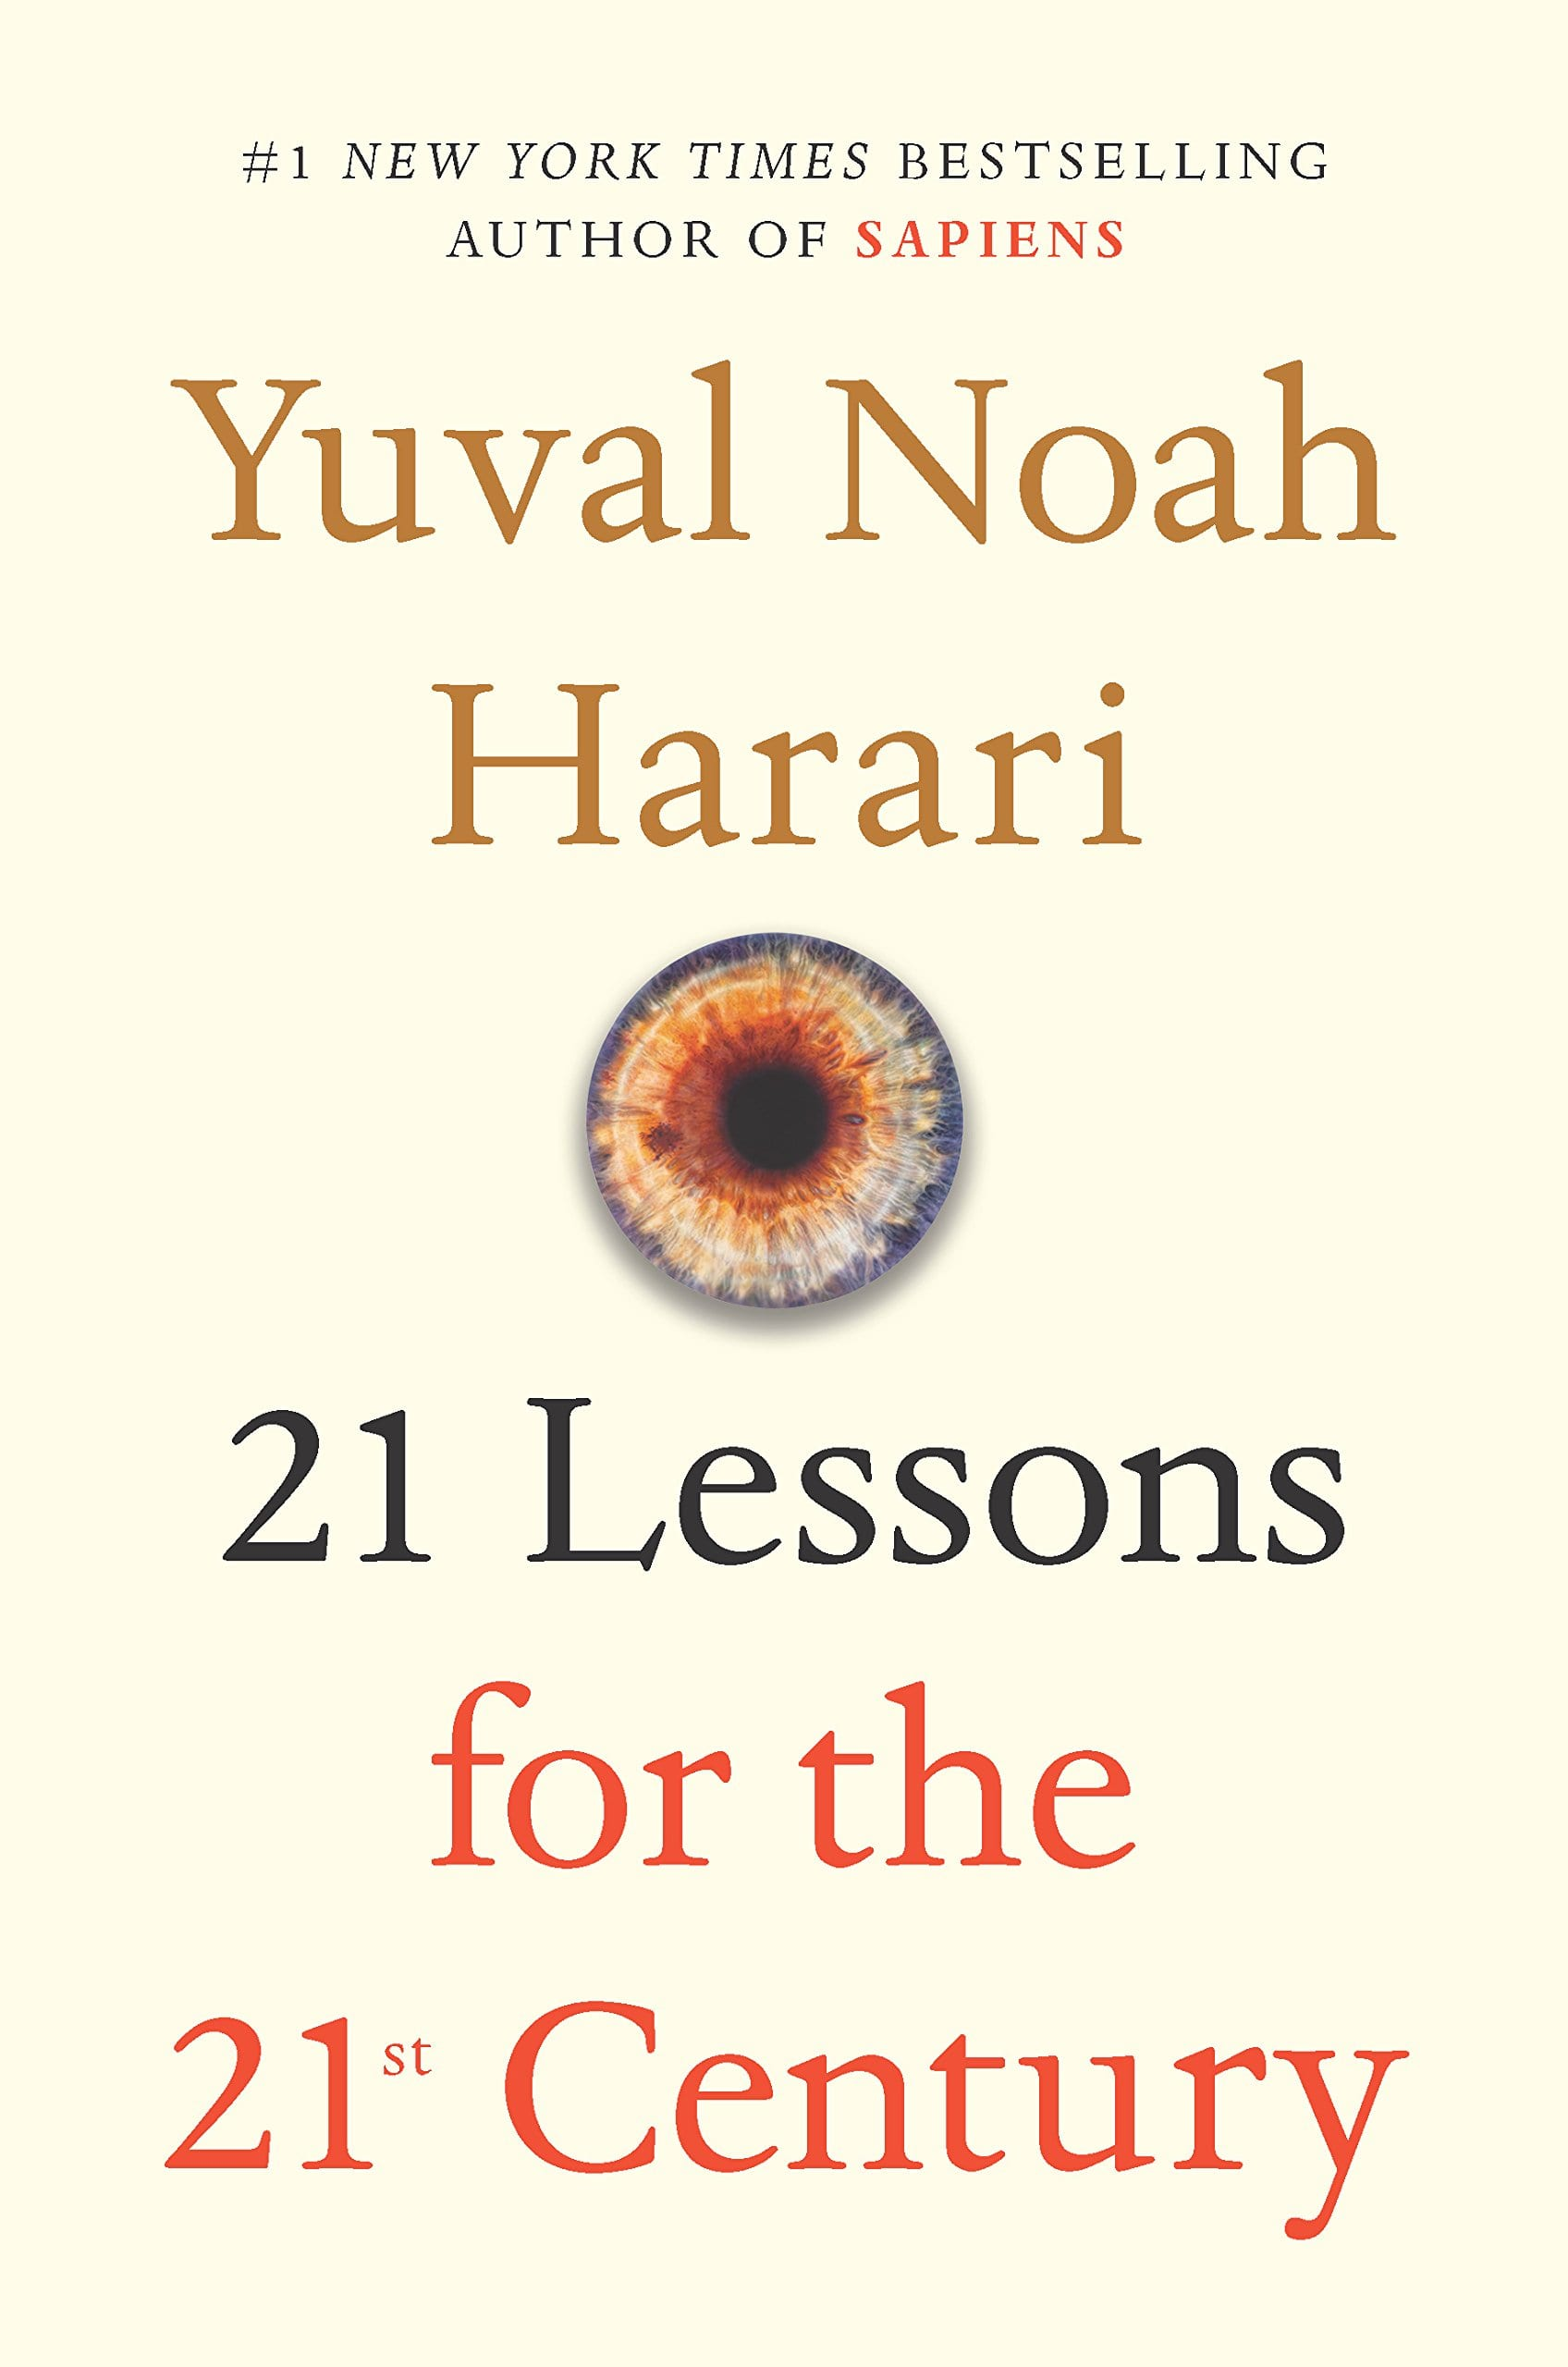 '21 Lessons for the 21st Century' shows humanity's challenges